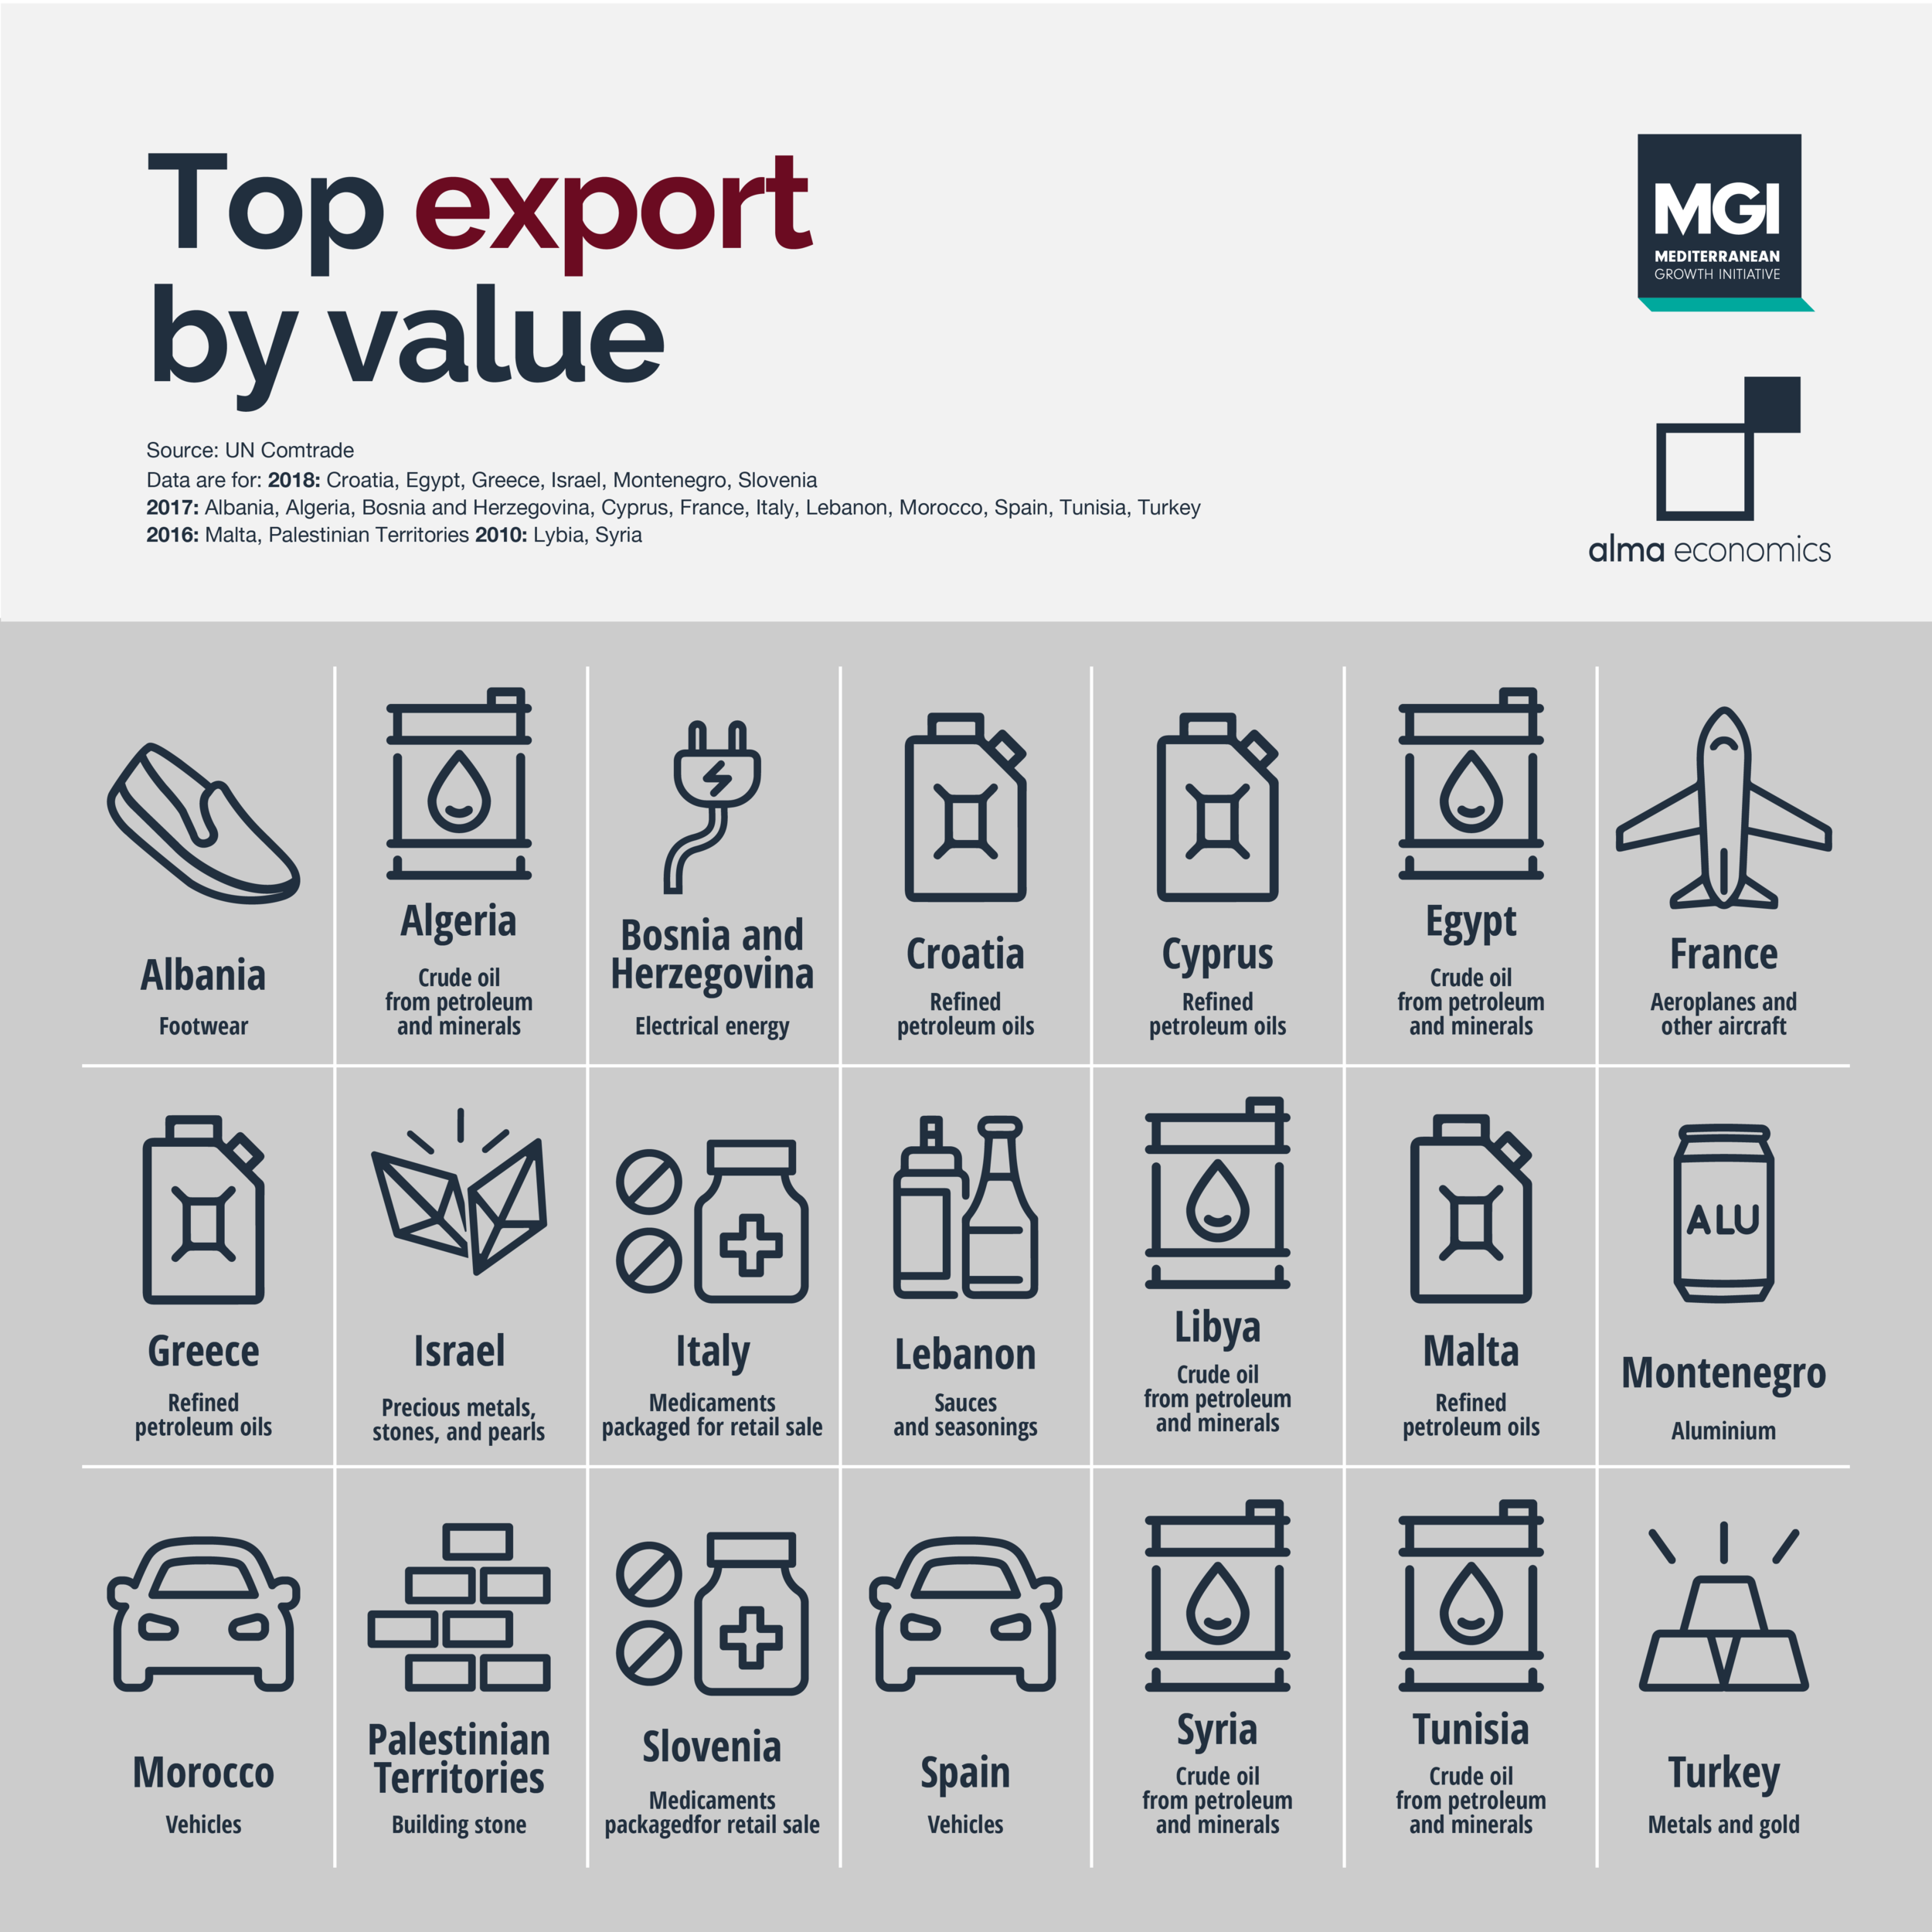 Top export by value - Petroleum oil is top export of North African and small Southern EU countries in the Med